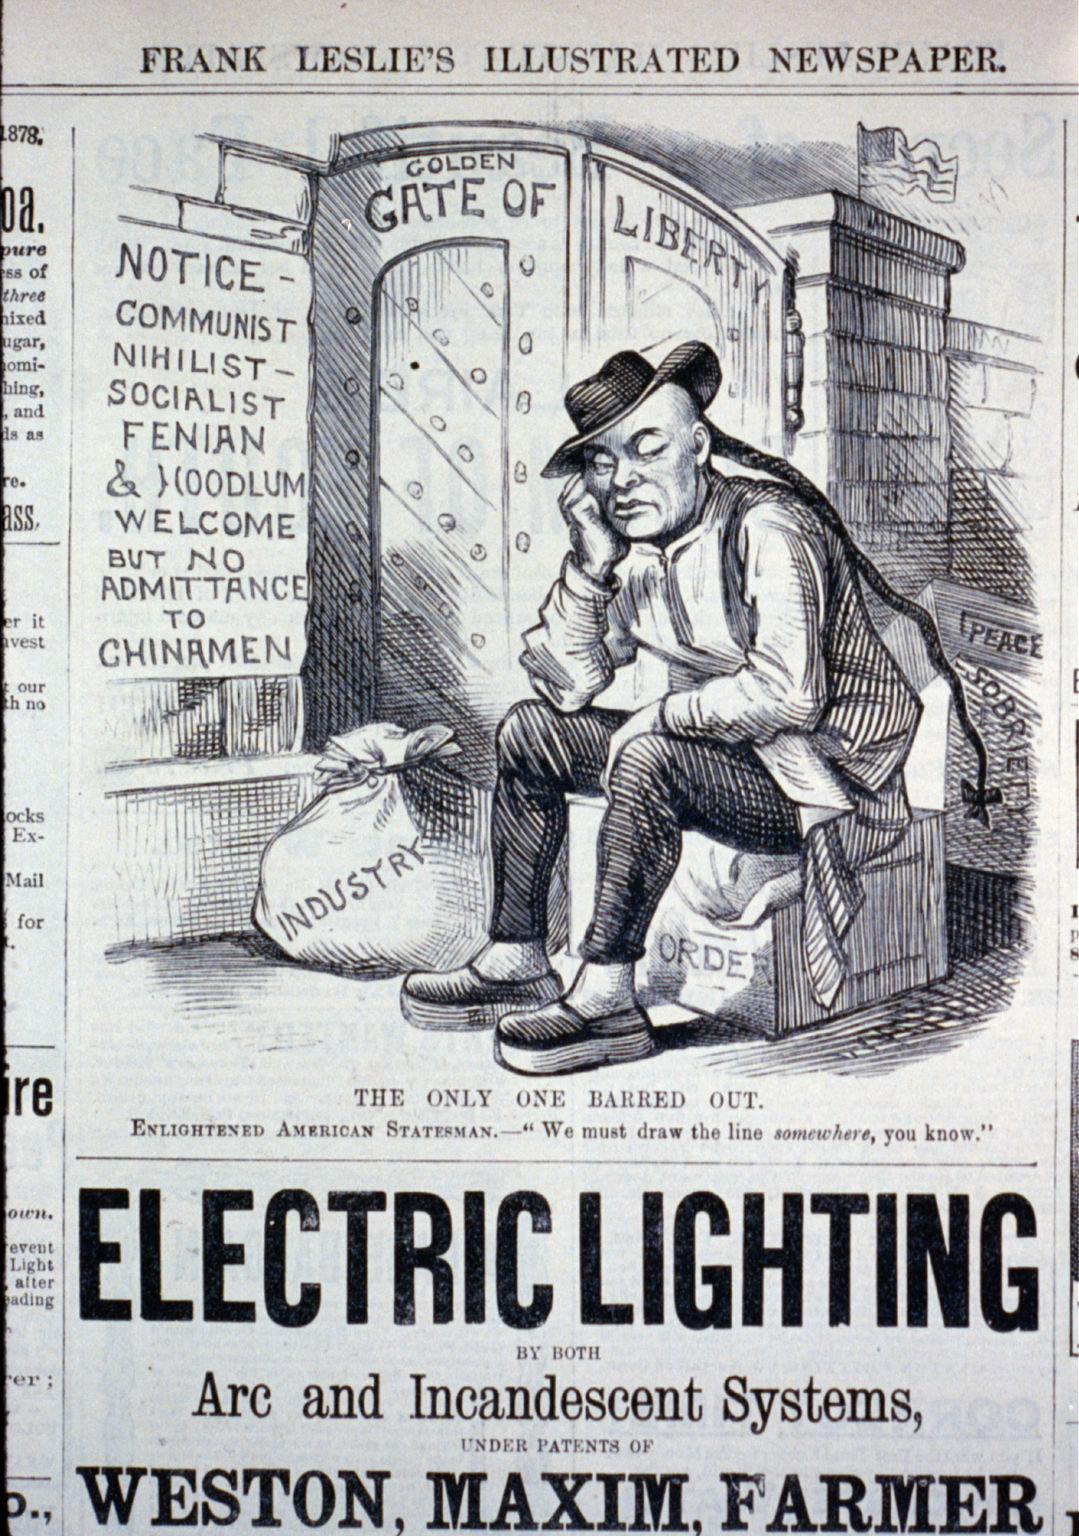 Chinese Exclusion Act, May 16, 1882.